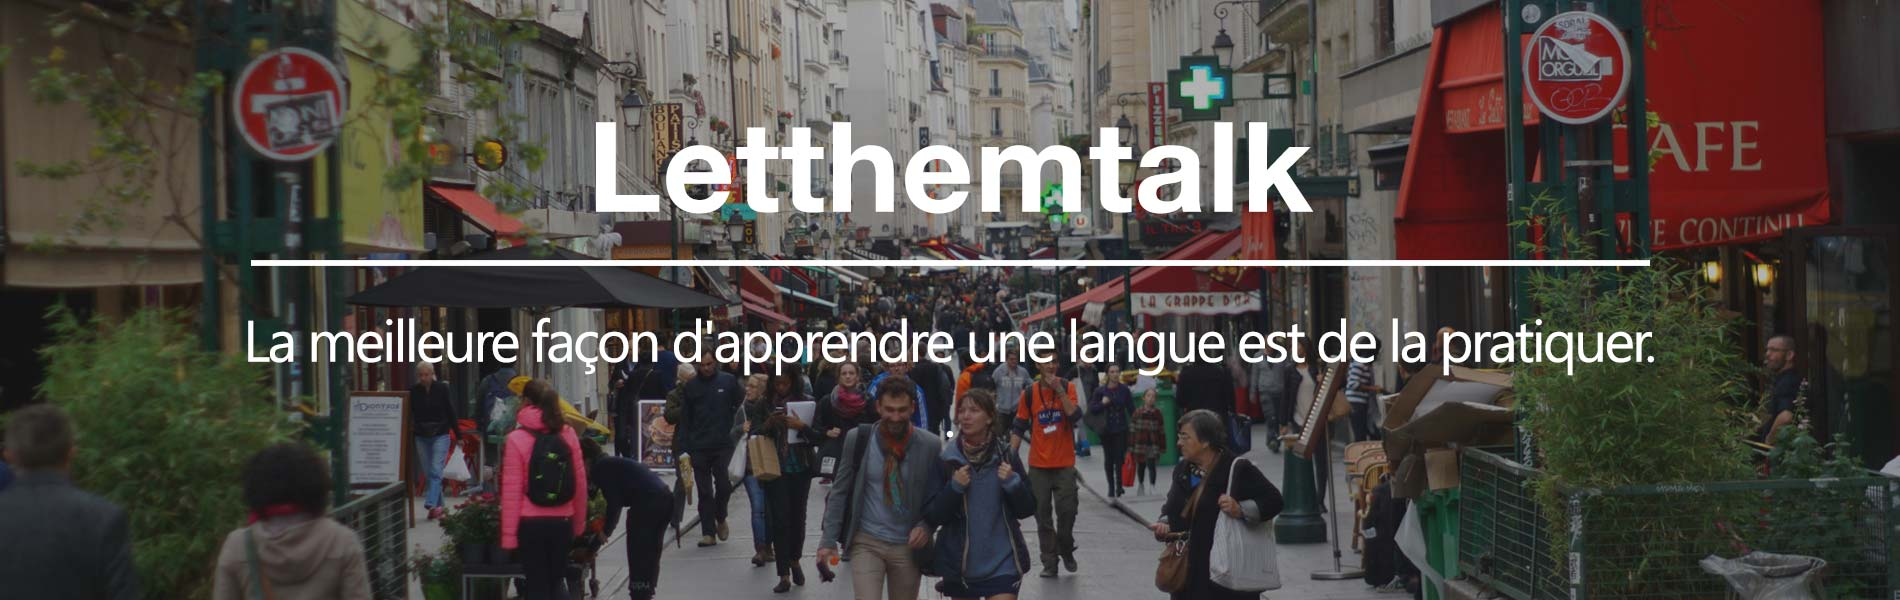 LetThemTalk école de langues à Paris